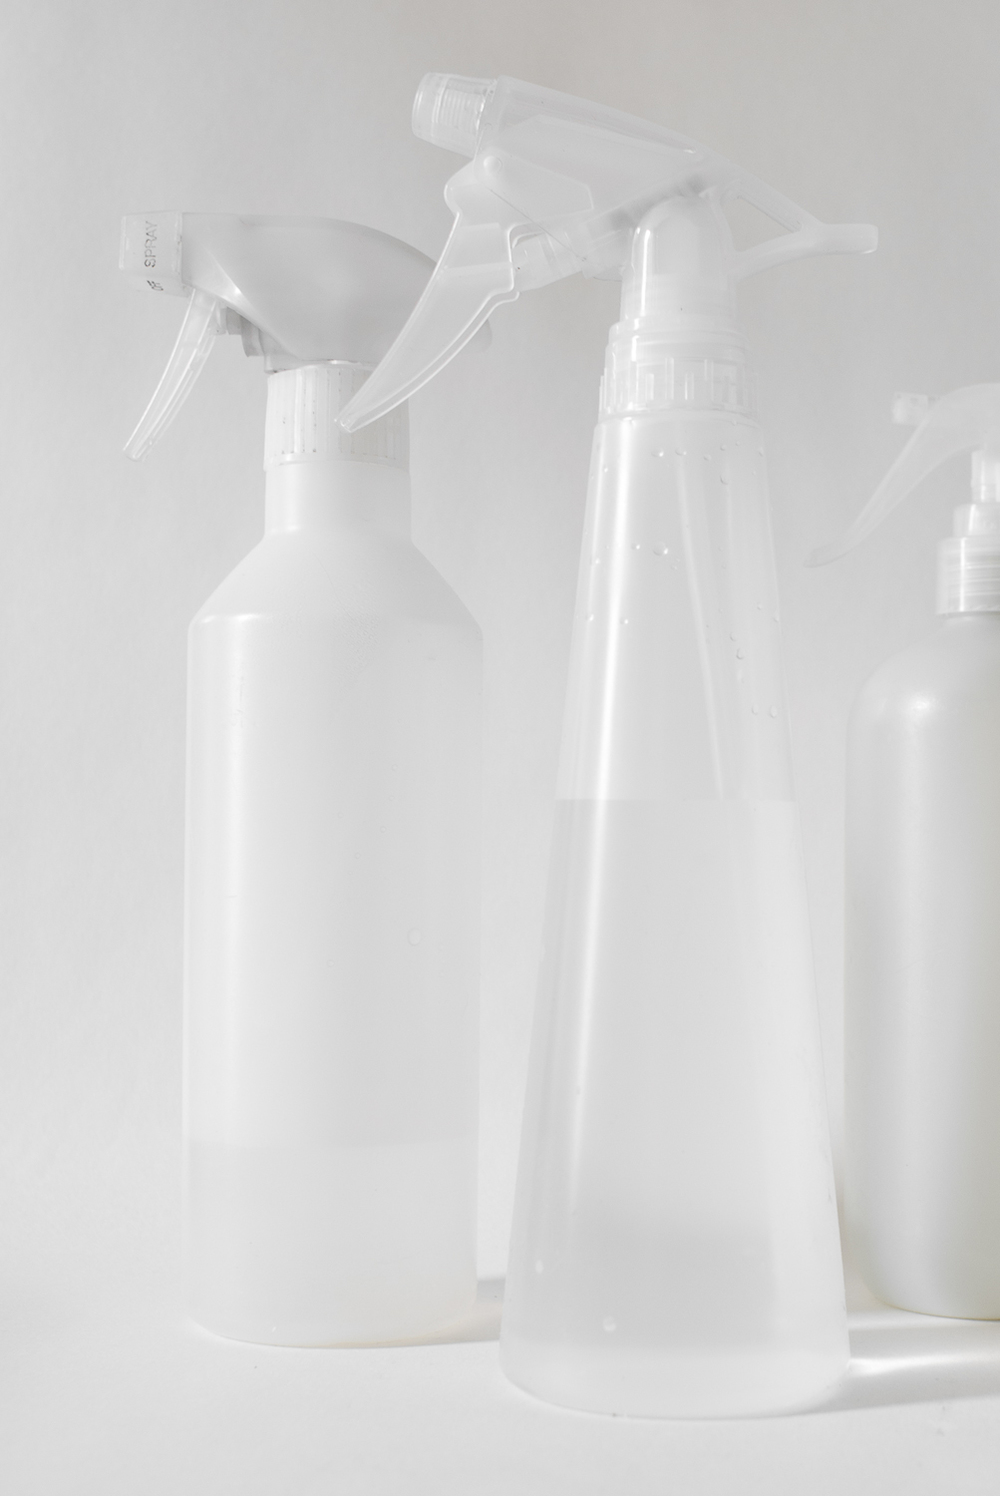 From left: my favorite trusty old sprayer from Muji (now, unfortunately, discontinued, at least in Poland); the cheap Ikea version(that doesn't withstand a five-year-old's water fight use); repurposed Lilly's Eco Clean All-Purpose Spray Cleaner bottle, well-washed and stripped of its label.